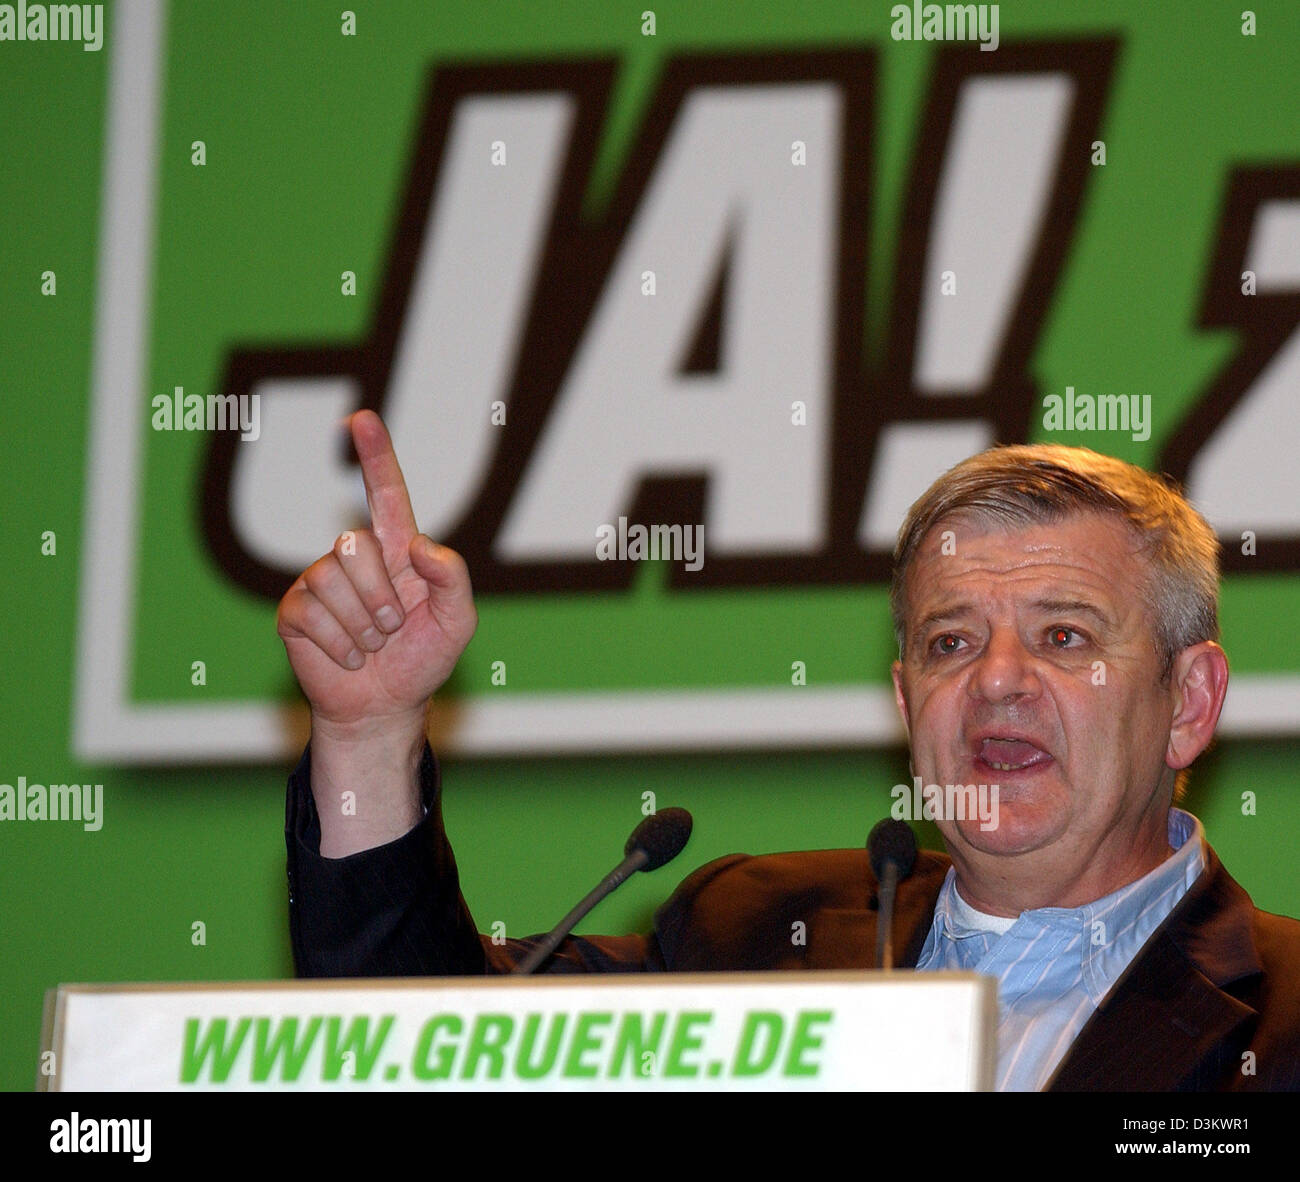 (dpa) - German Foreign Minister Joschka Fischer raises his finger as he speaks during an election campaign rally of the Green Party in Berlin, 16 September 2005. Around 62 million voters were called upon to cast their vote at the general election for the German Bundestag parliament which will take place on Sunday, 18 September 2005. Photo: Stephanie Pilick Stock Photo